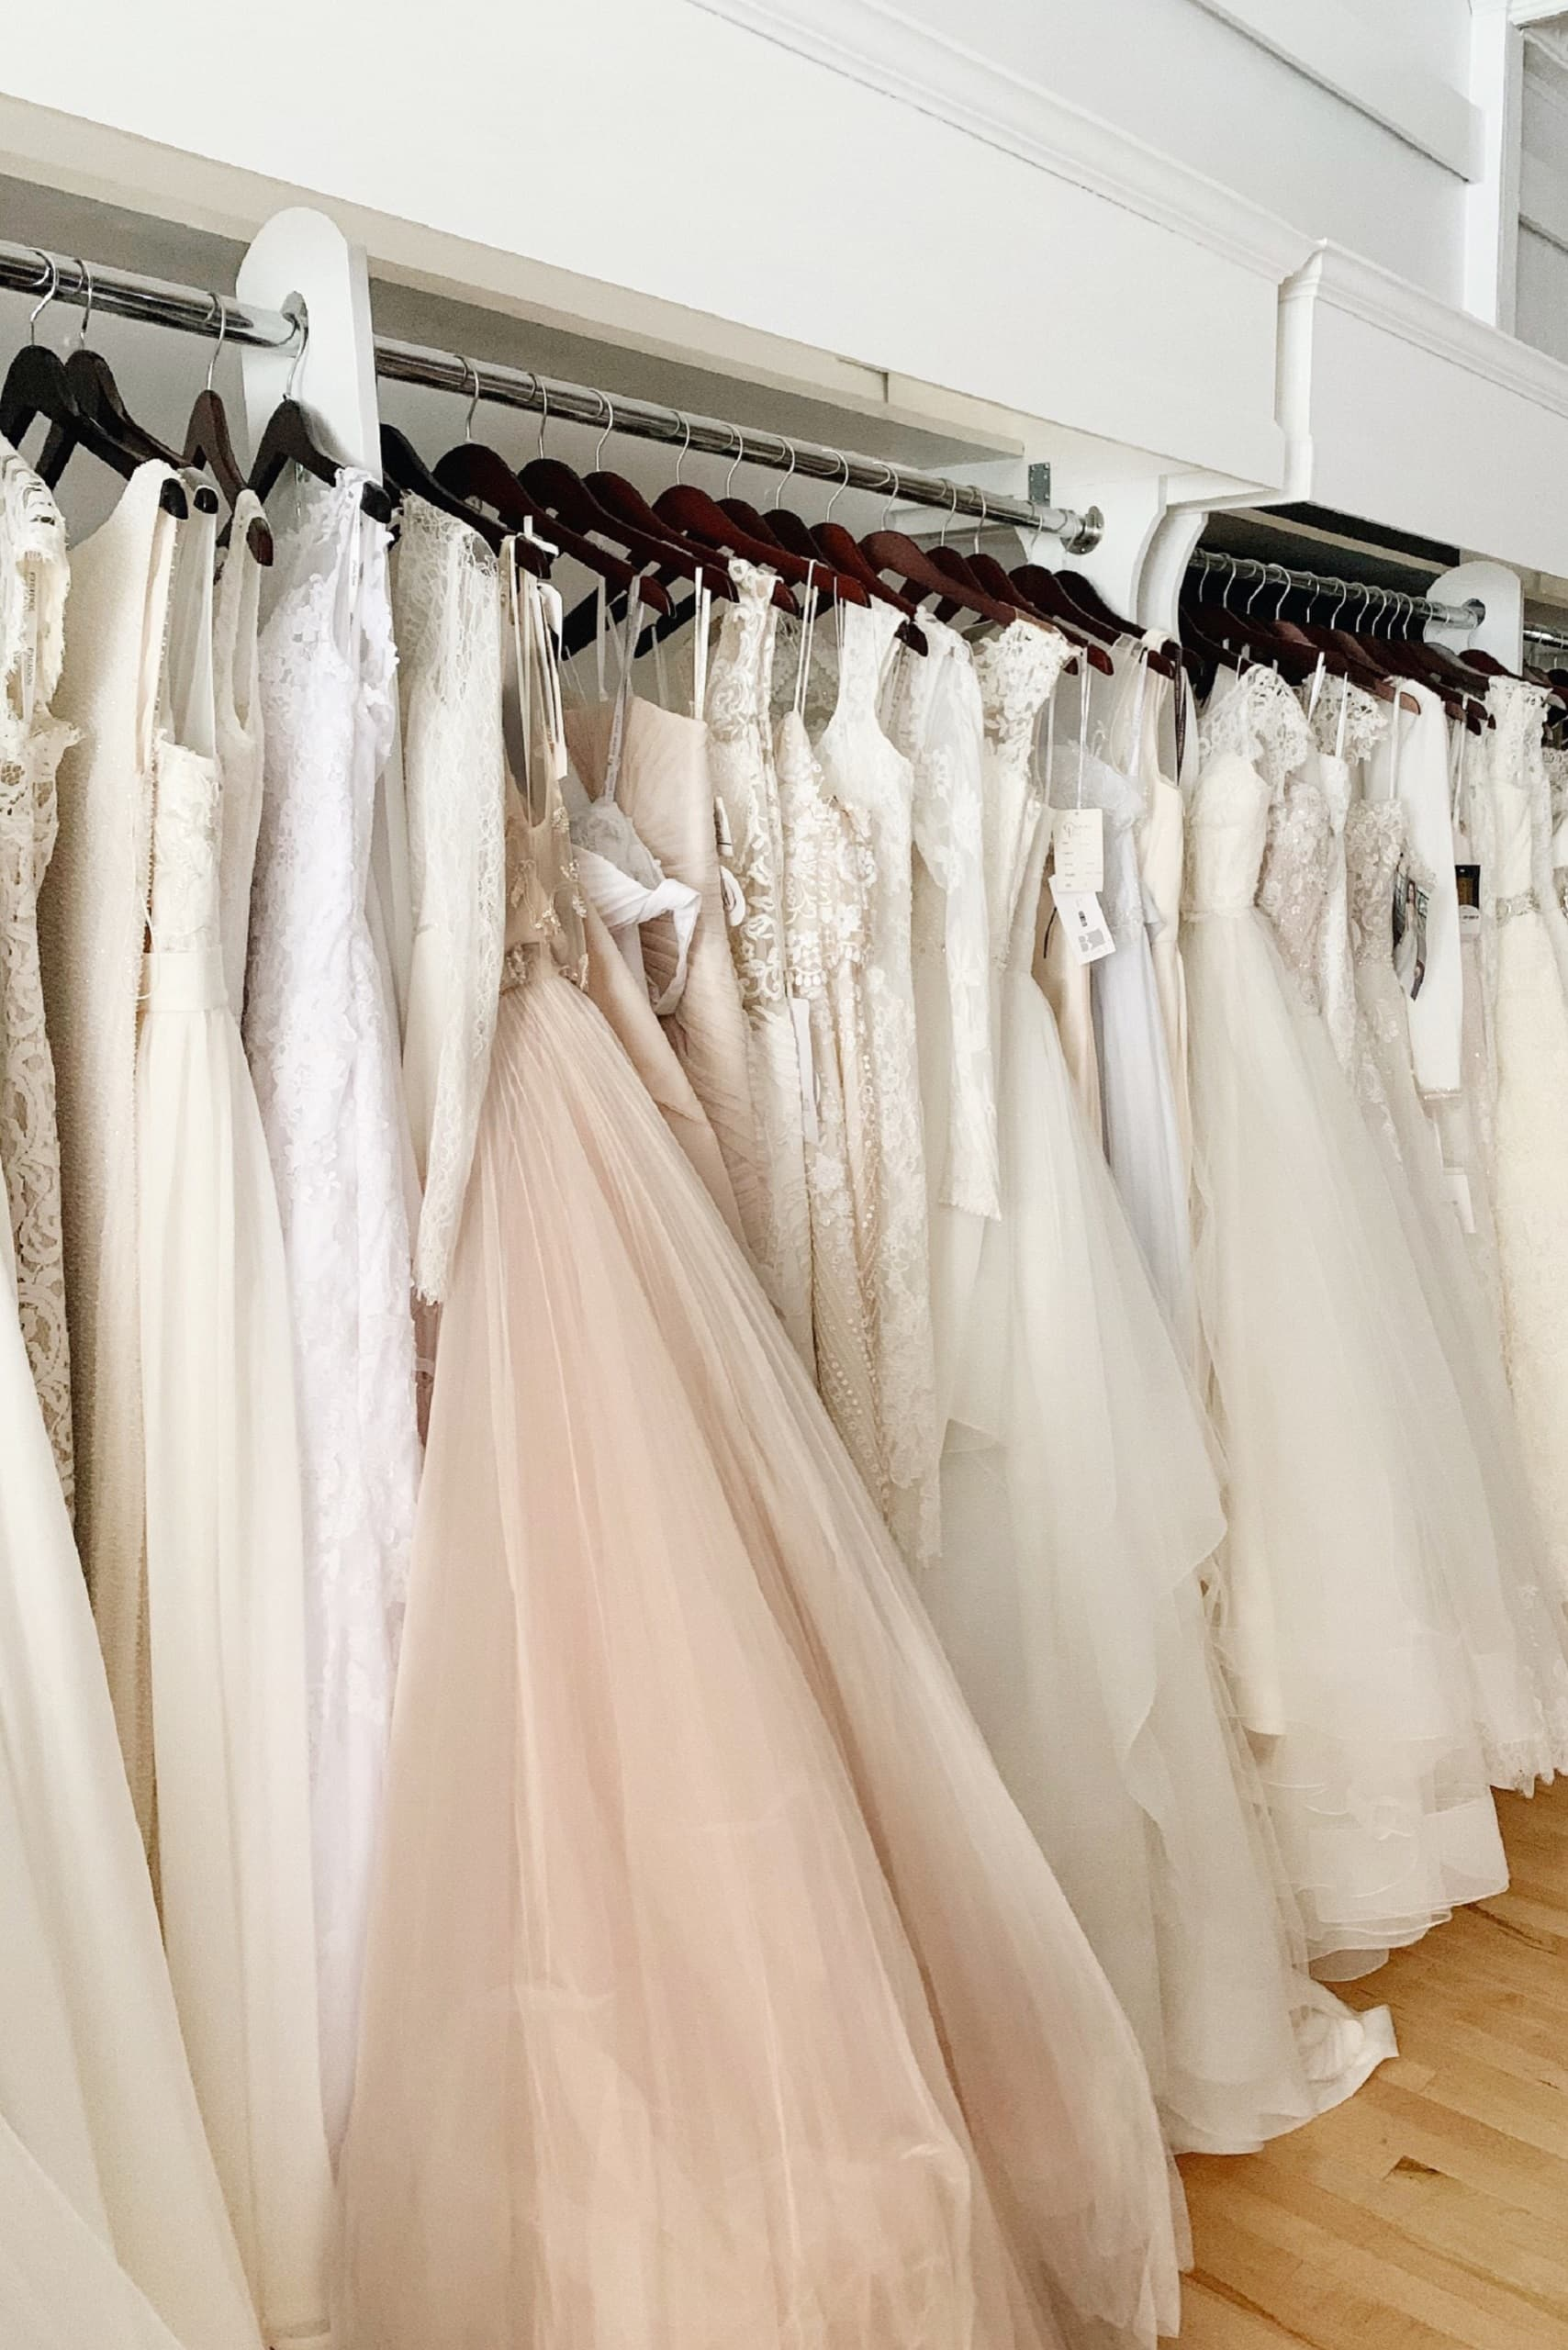 Second Dance Bridal Formal Consignment Second Hand Wedding